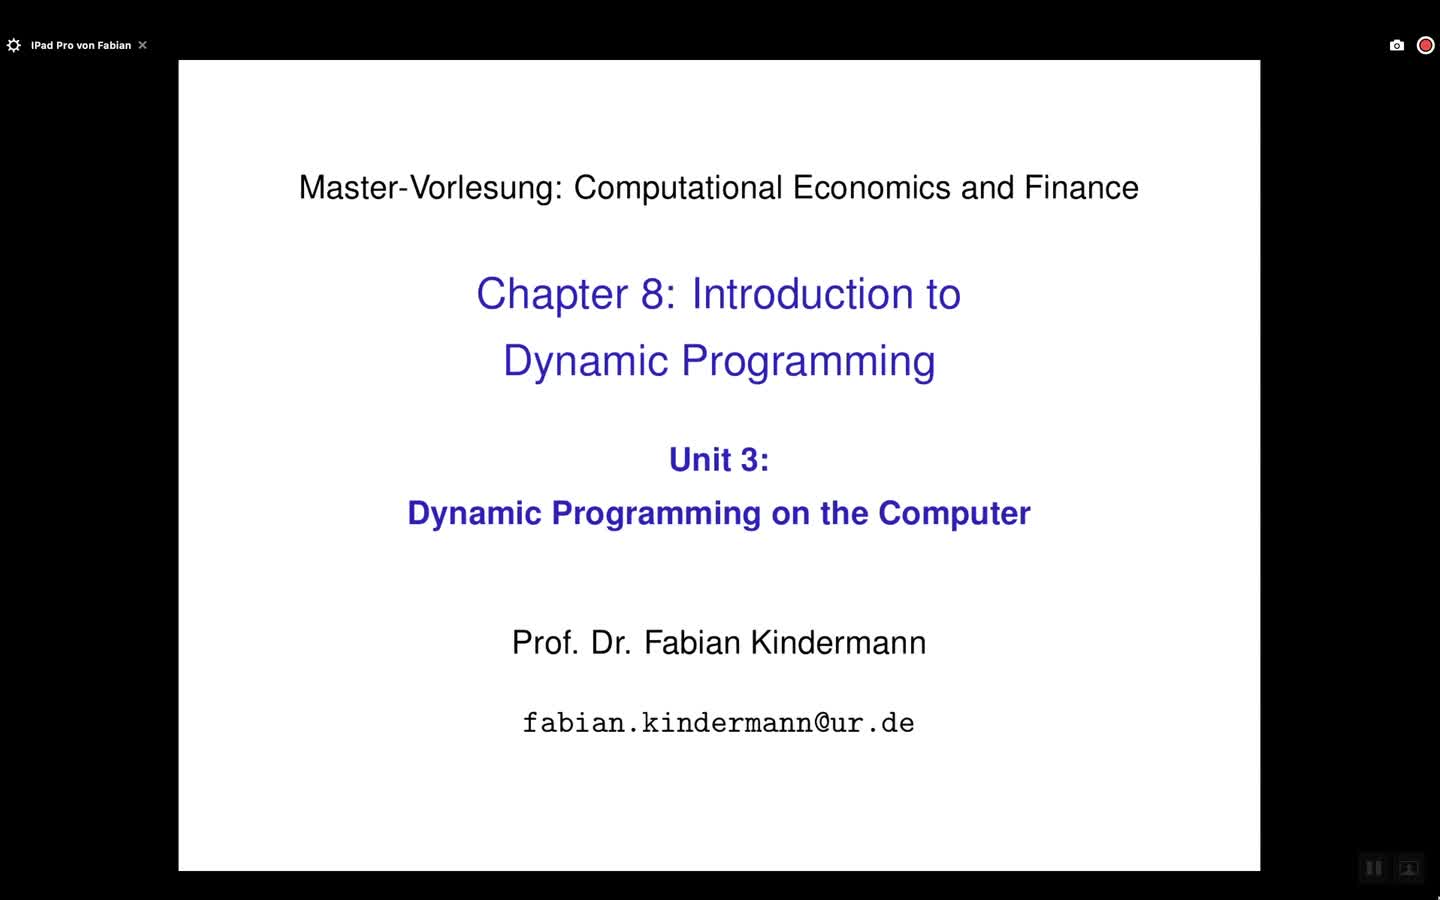 Chapter 8 - Unit 3 - Dynamic Programming on the Computer